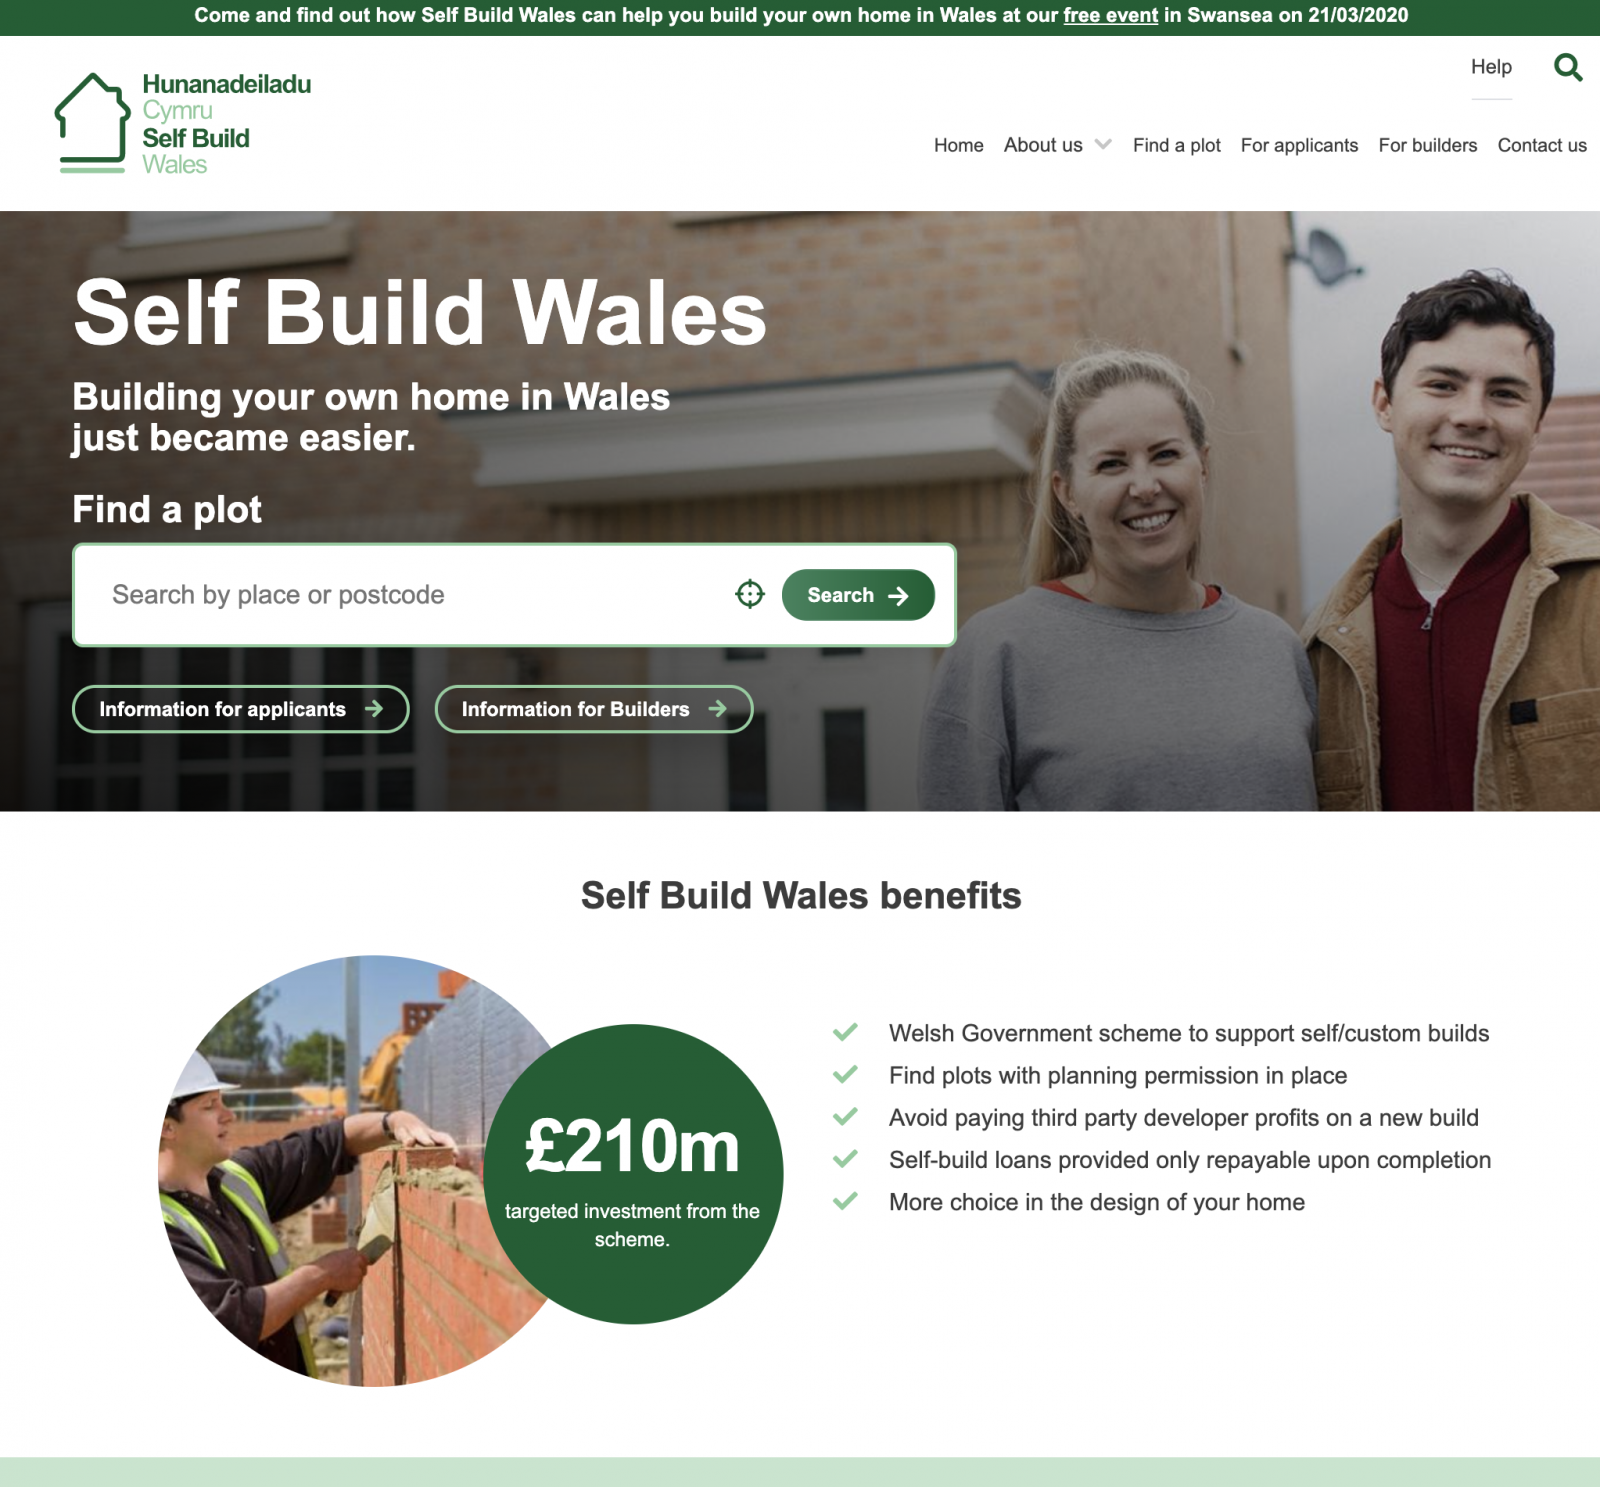 Self Build Wales